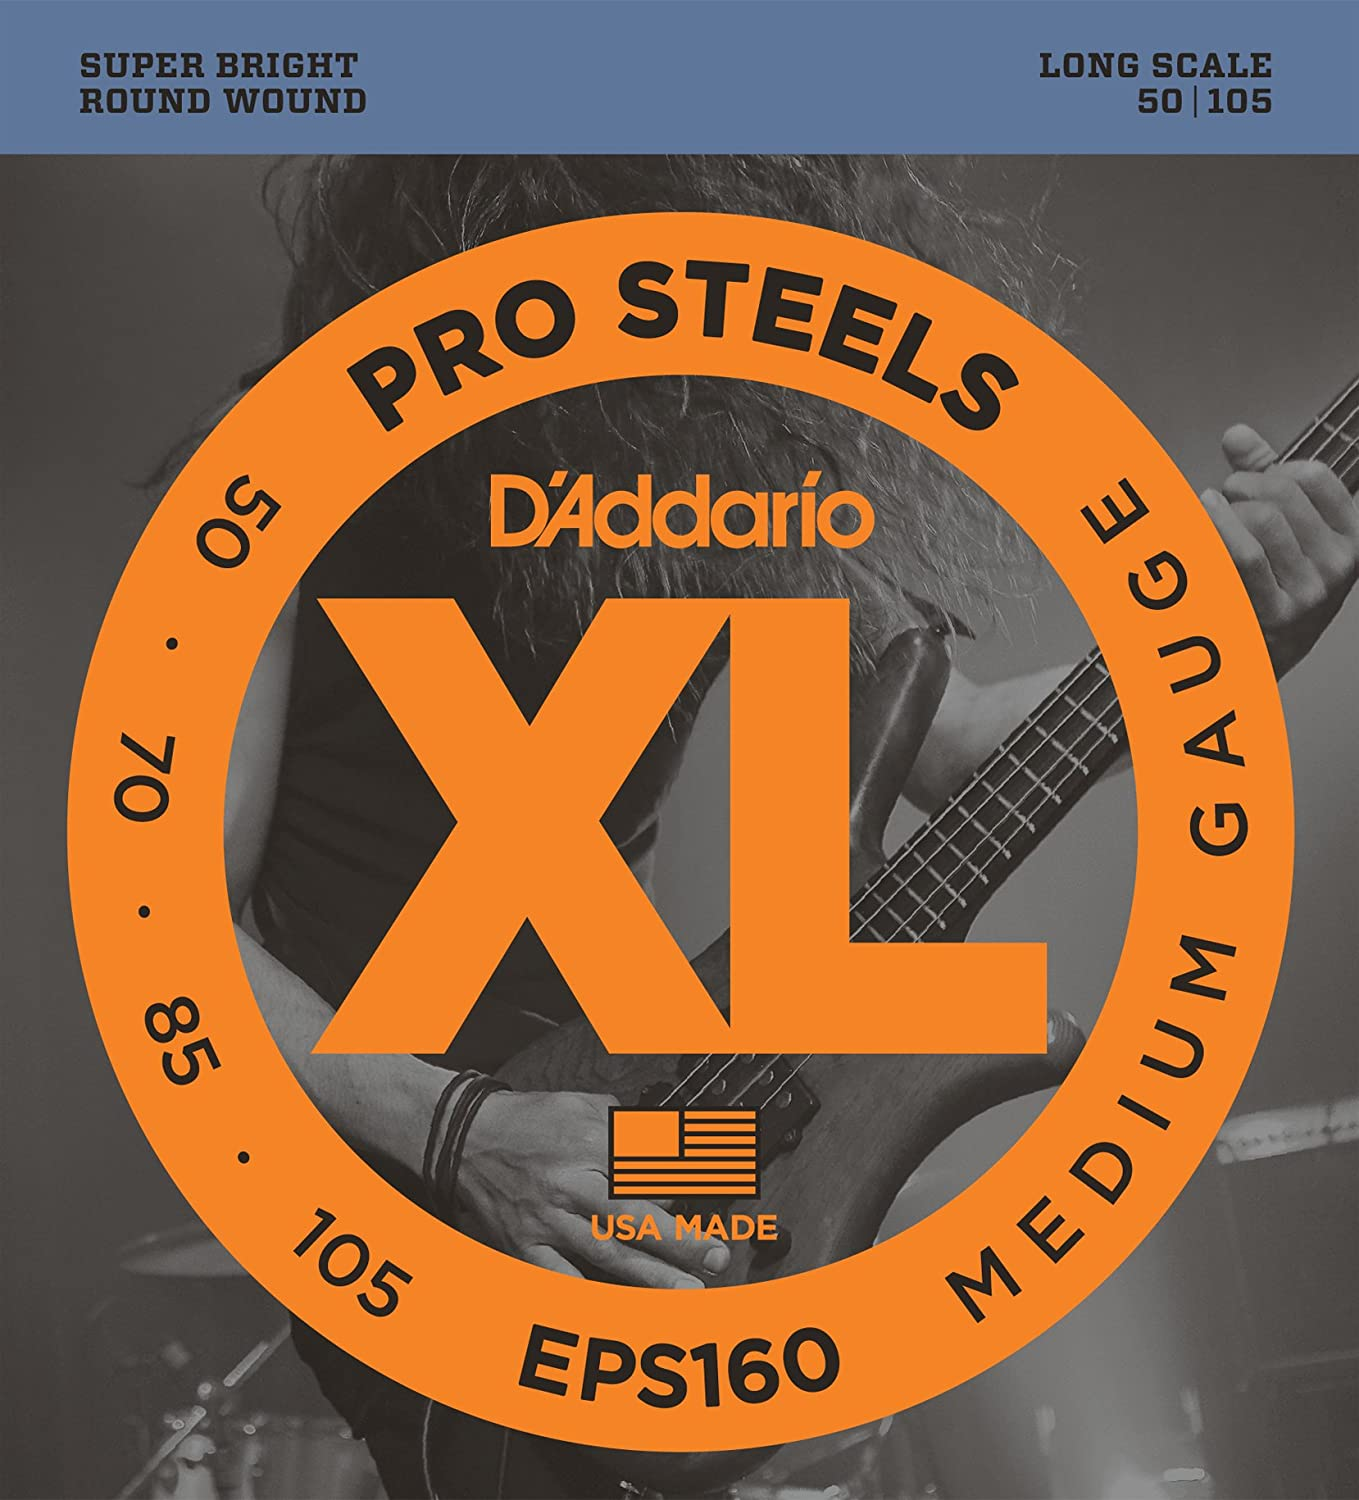 D'Addario EPS160 ProSteels Bass Guitar Strings, Medium, 50-105, Long Scale D'Addario &Co. Inc